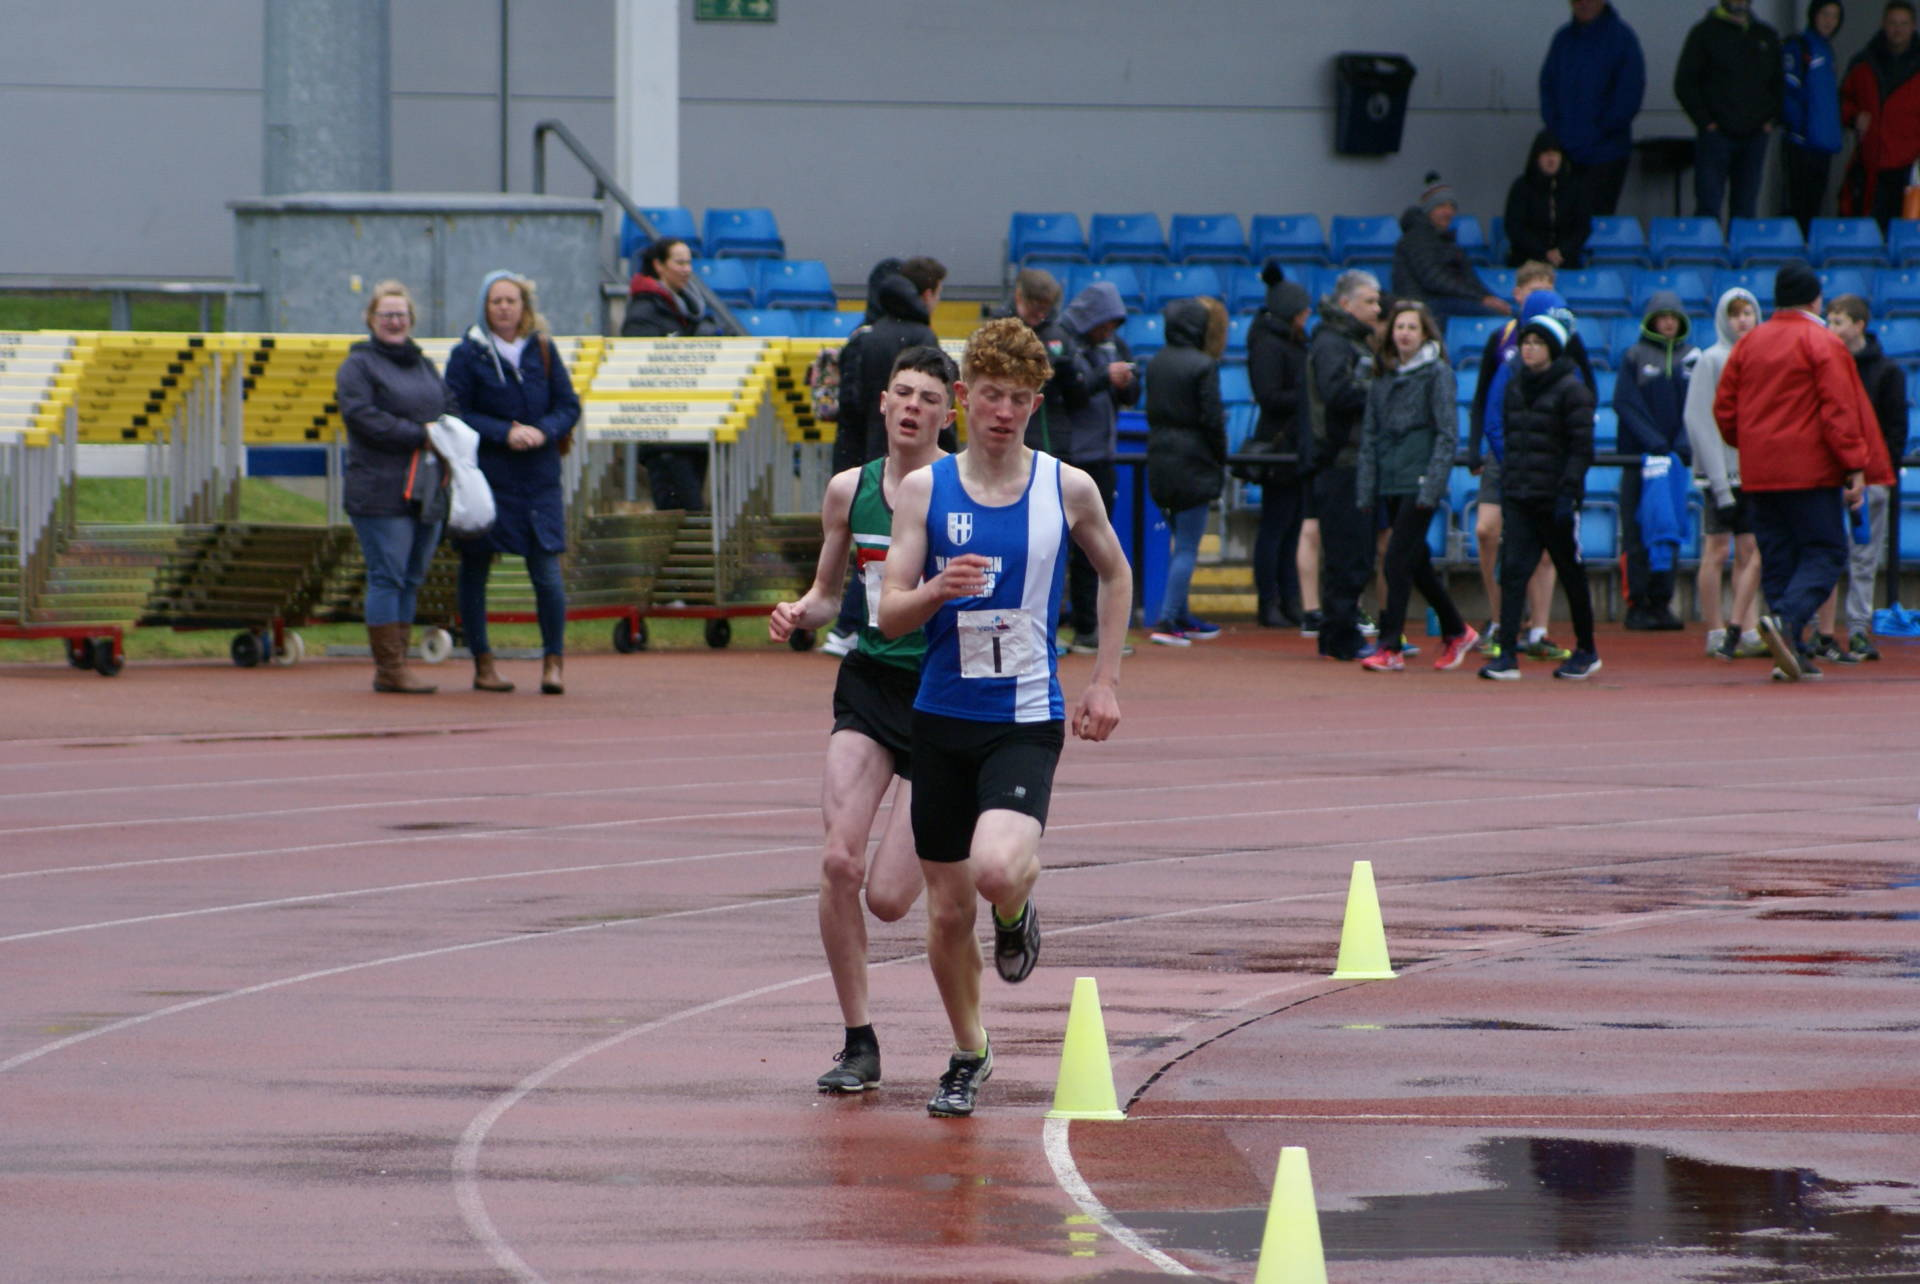 Solid start for Harriers in Premier Division UKYDL – London Marathon & Matt Captains North West Boys Team – Three Peaks – Mid Cheshire 5k – AoC Cross Country Championships at Woollaton Park – Blackpool Aquathon